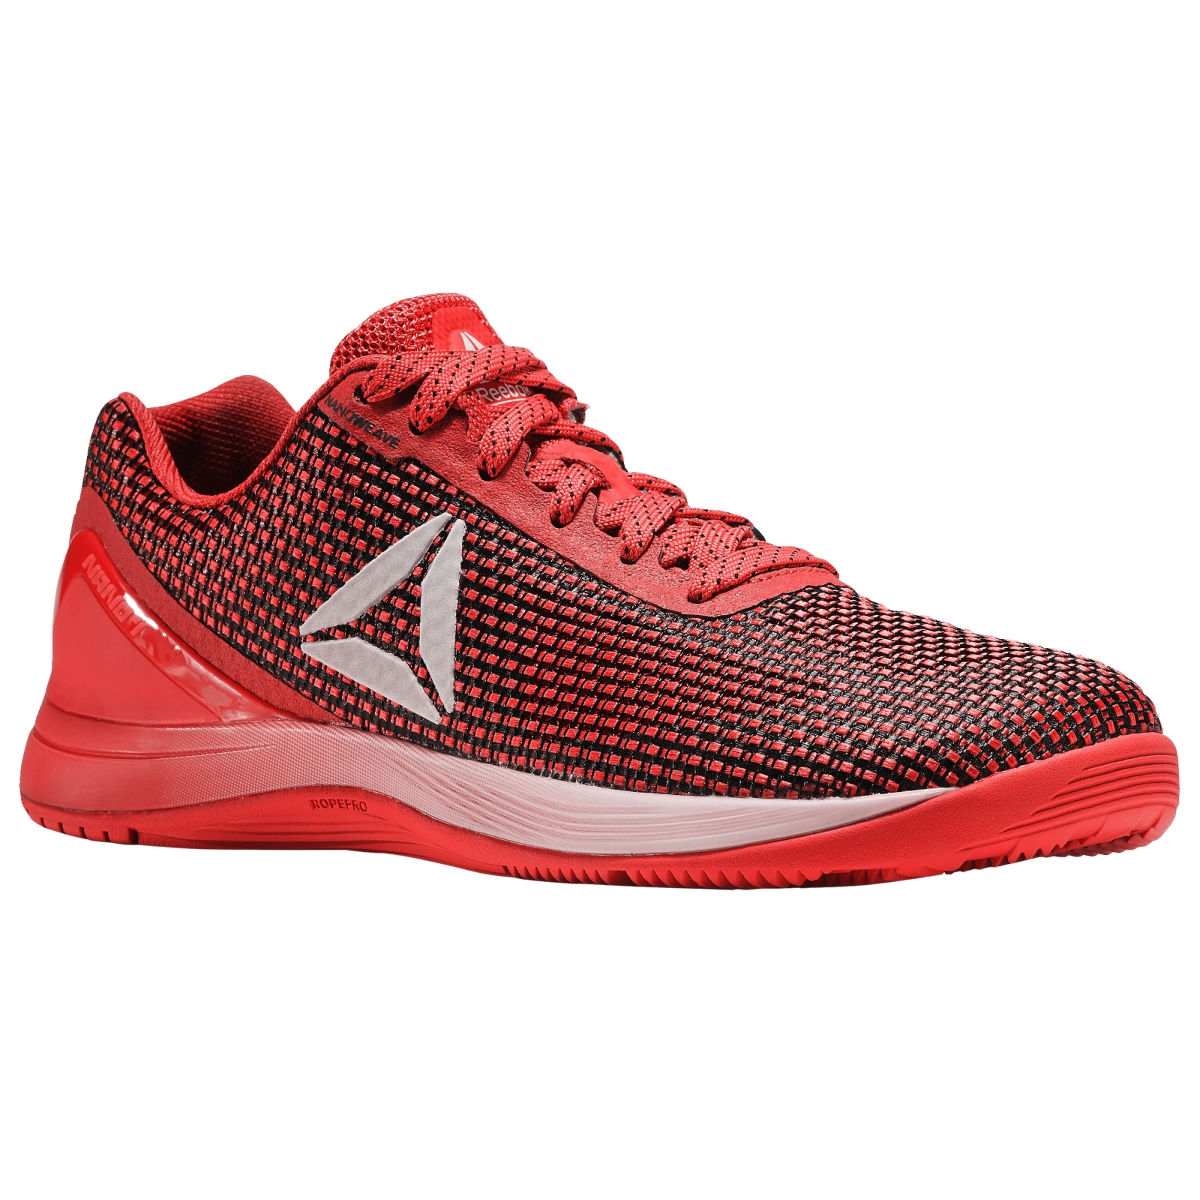 Chaussures Reebok CrossFit Nano 7.0 (PE17) - UK 10 Red/Red